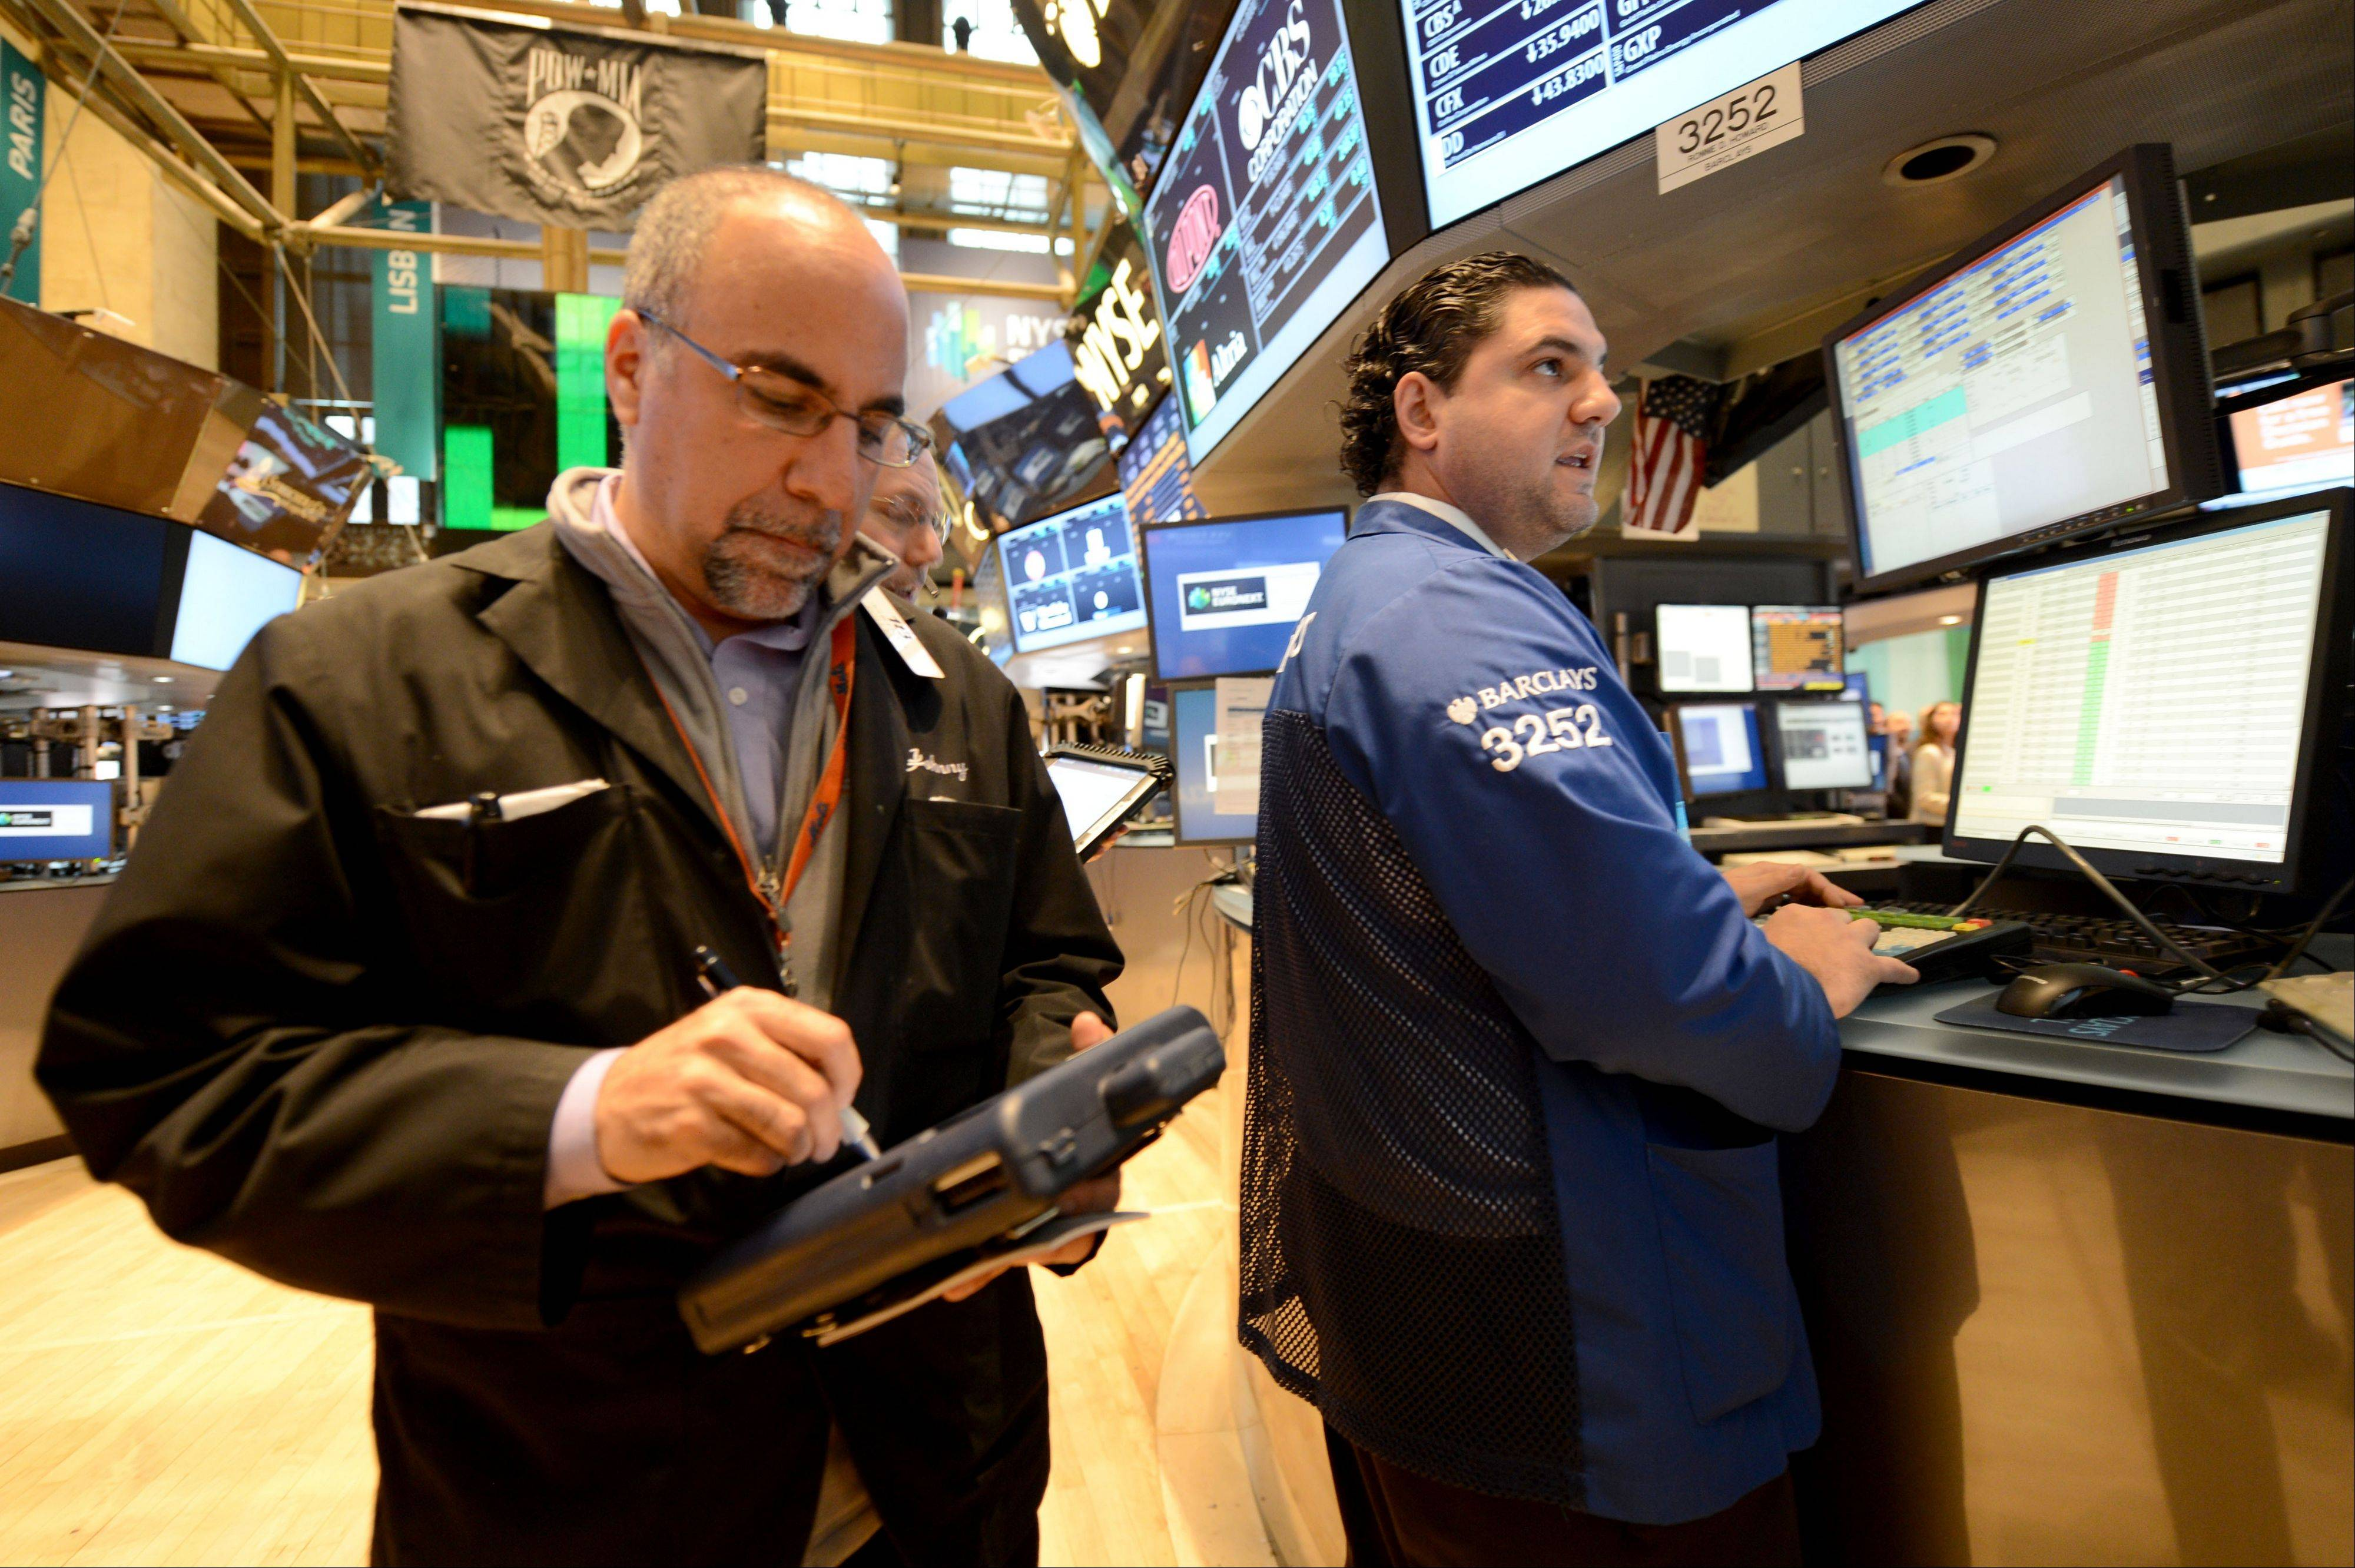 U.S. stocks declined, extending losses since the re-election of President Barack Obama and sending the Dow Jones Industrial Average to the lowest level since July, amid concern about Greece�s financial aid payment.